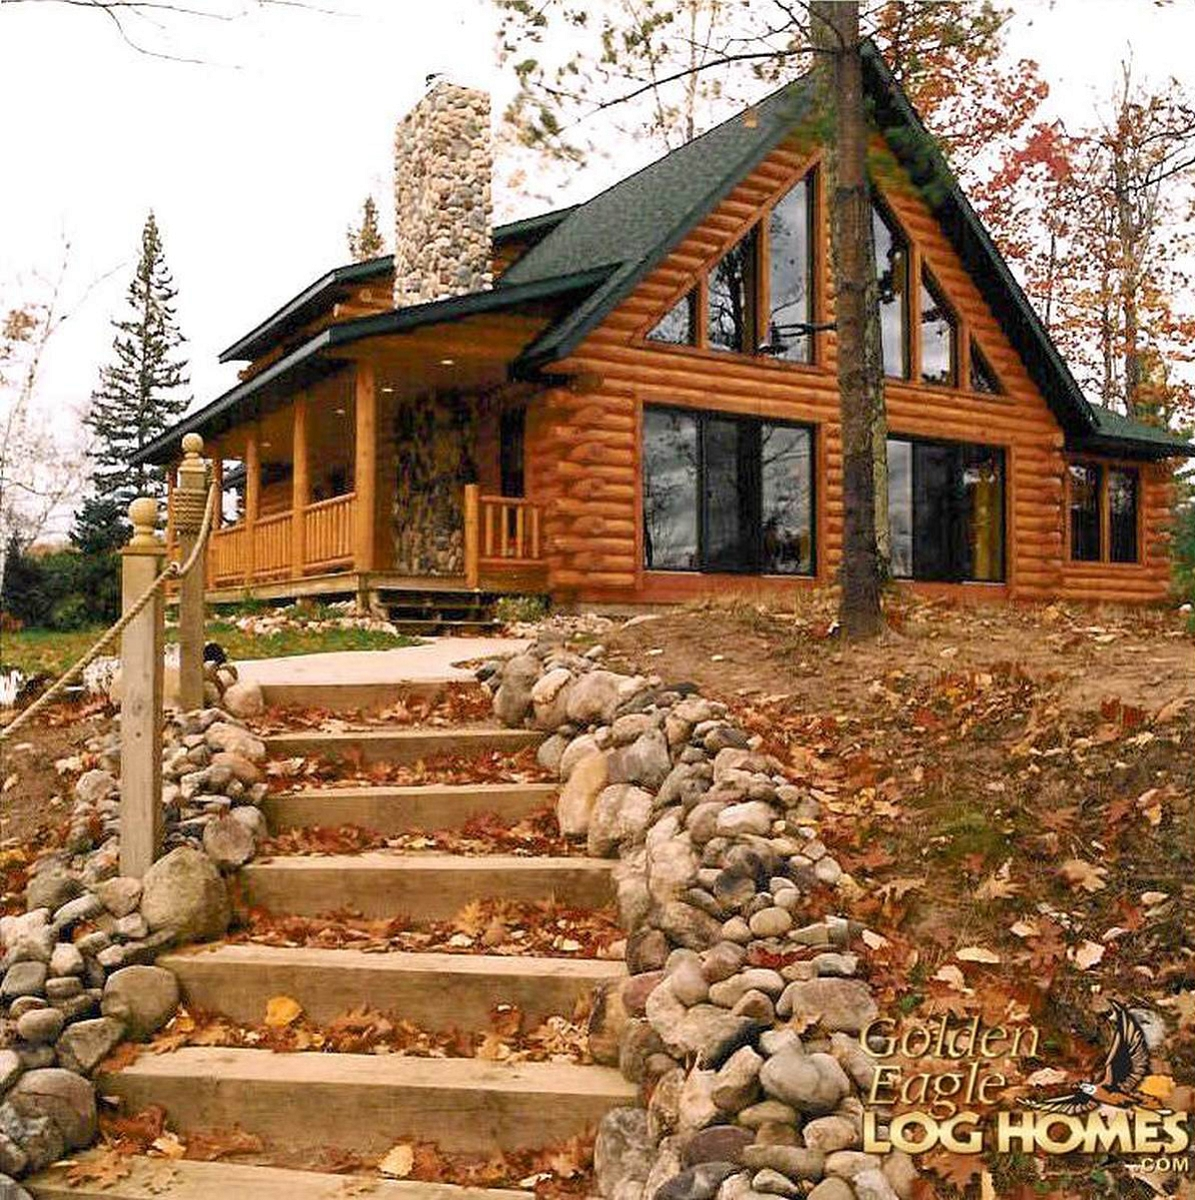 Golden eagle log and timber homes log home cabin for Log cabin layouts